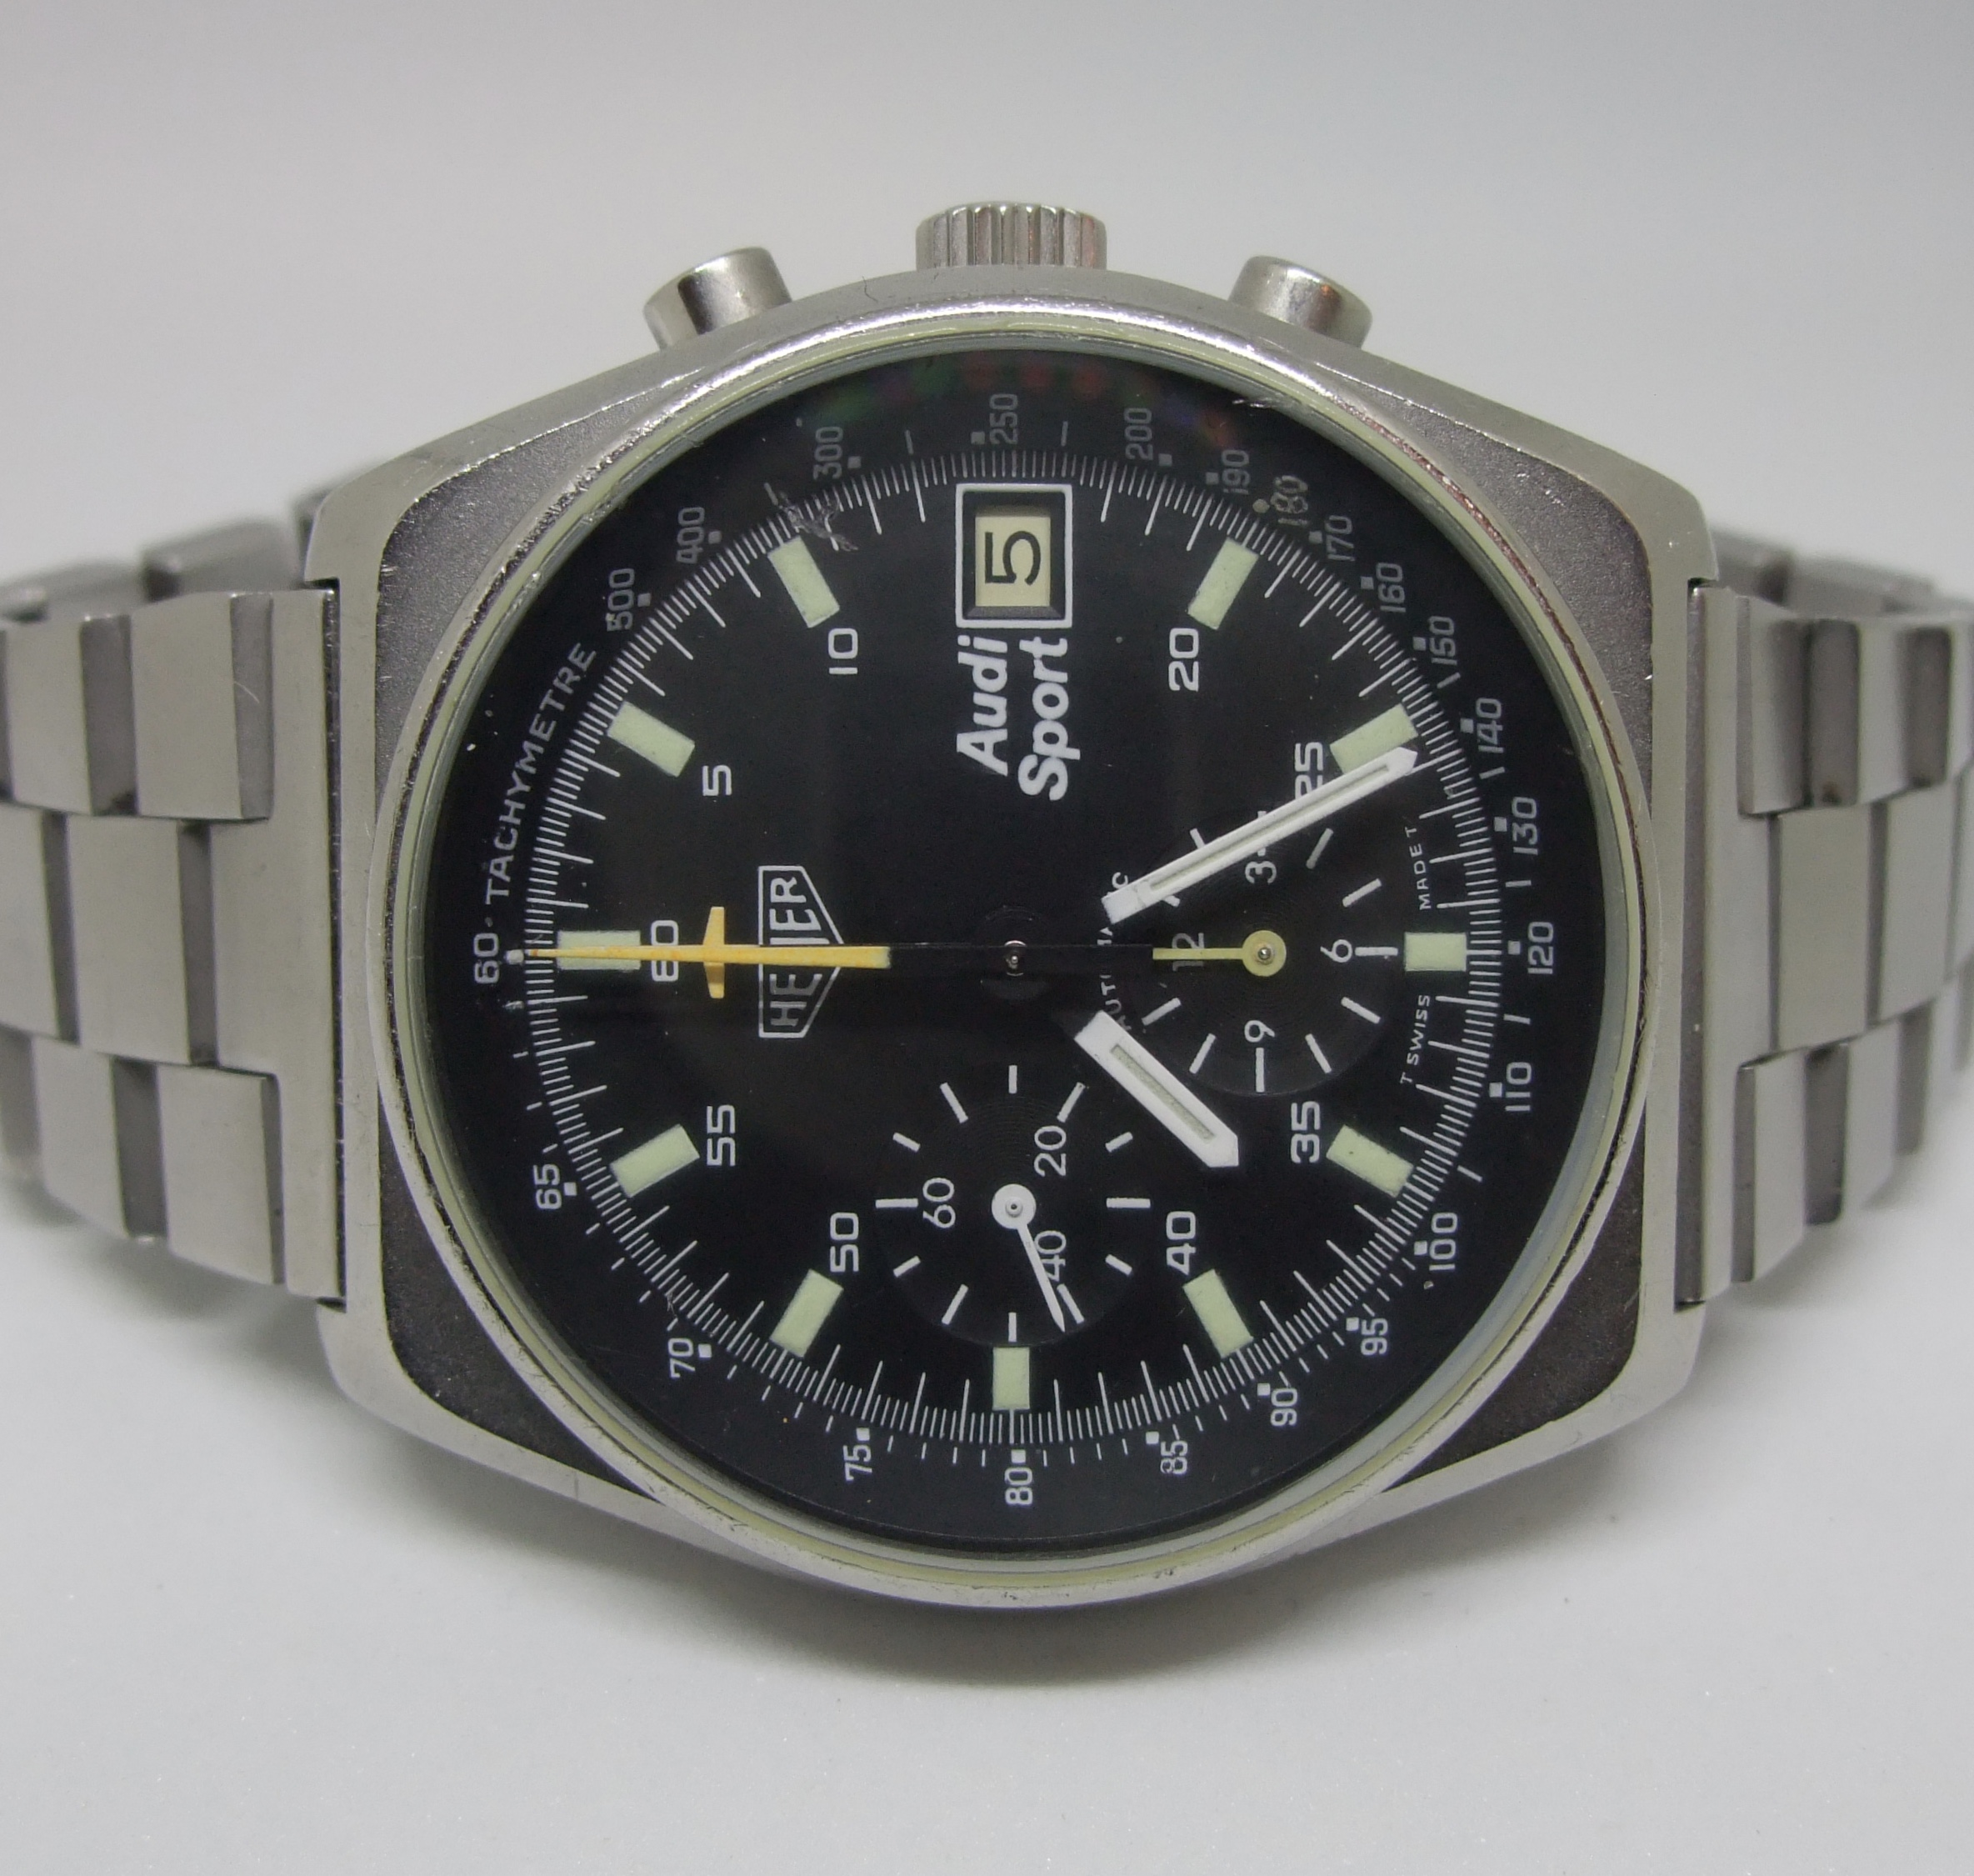 image champion fit jb speedmaster threads and updates omega watches forums